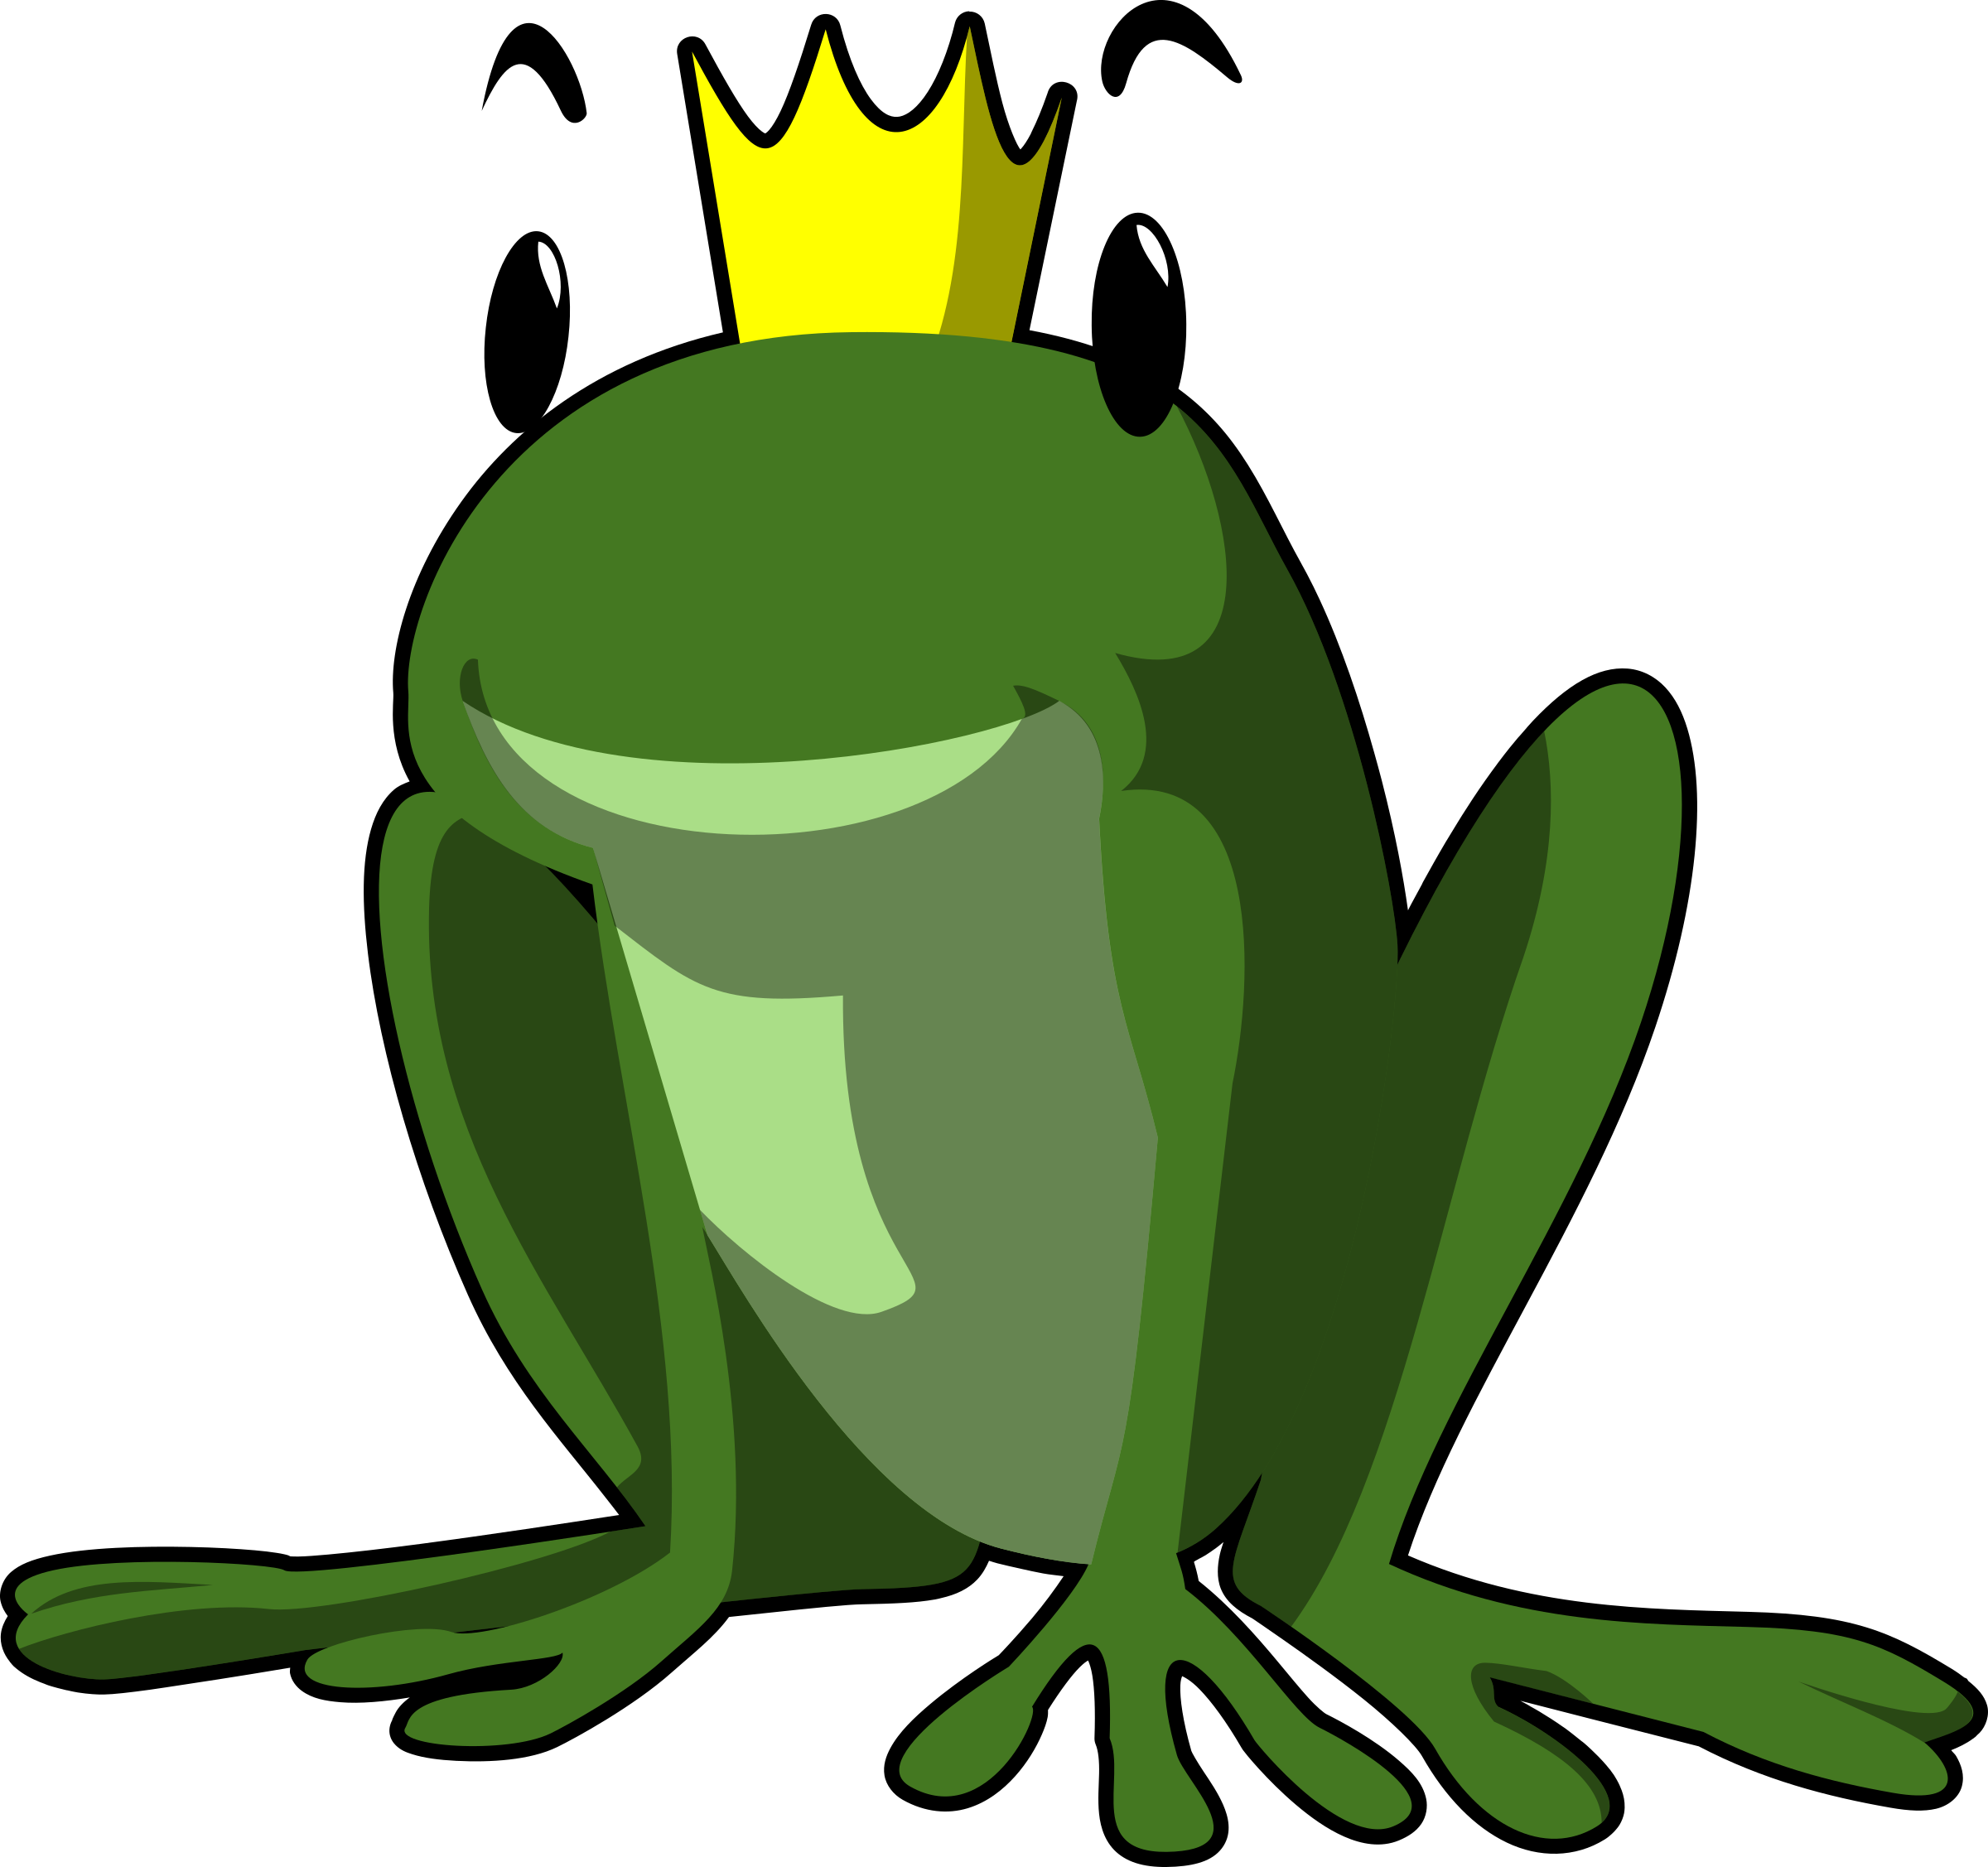 Frog crown clipart svg black and white download Clipart - frog prince svg black and white download